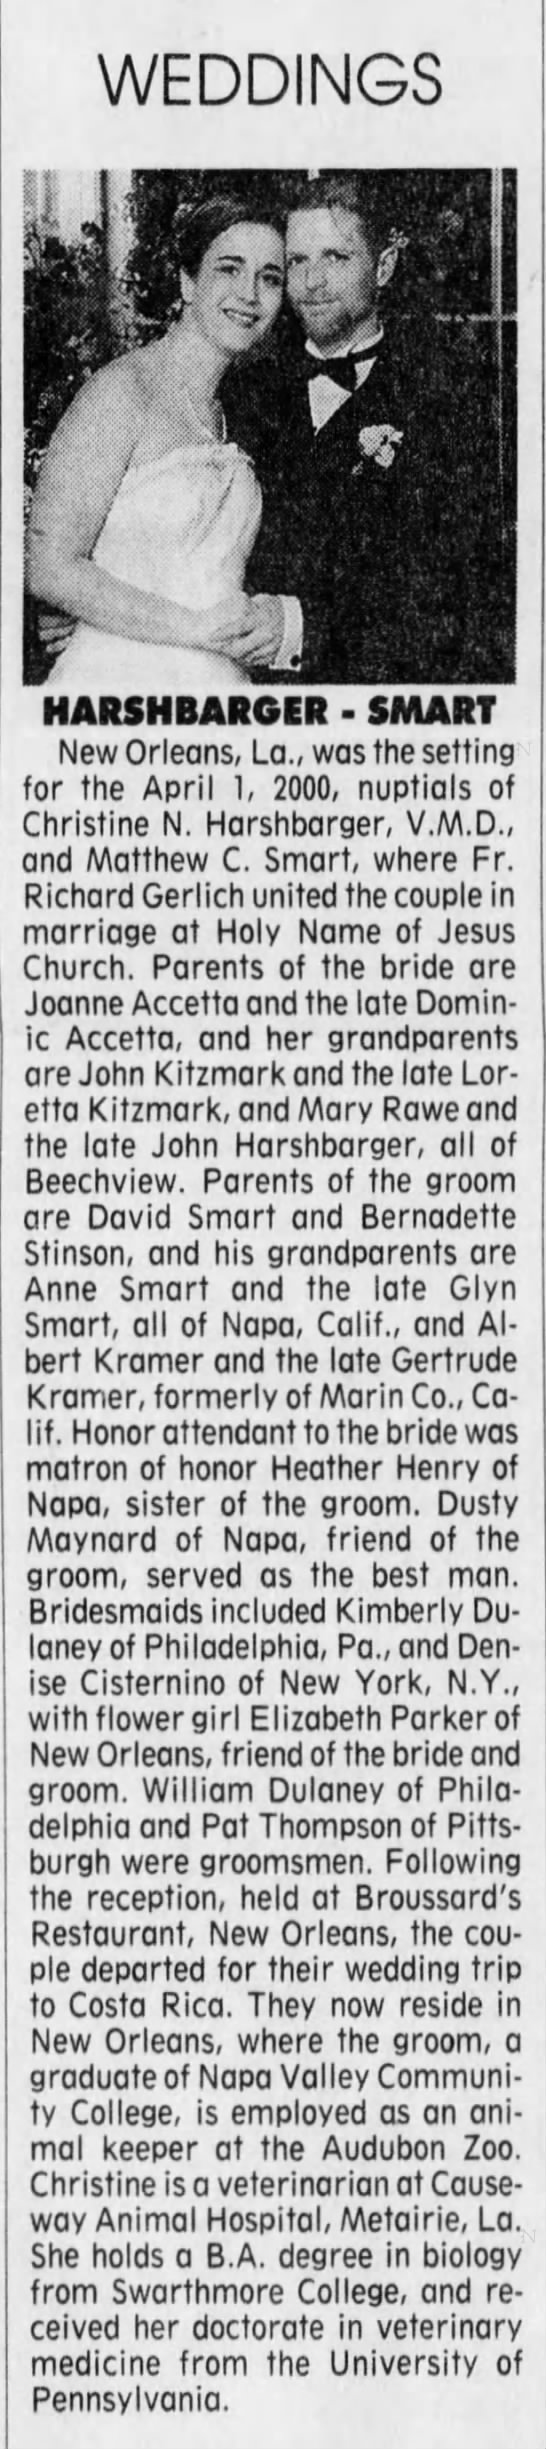 2001 Harshbarger & Smart Wedding